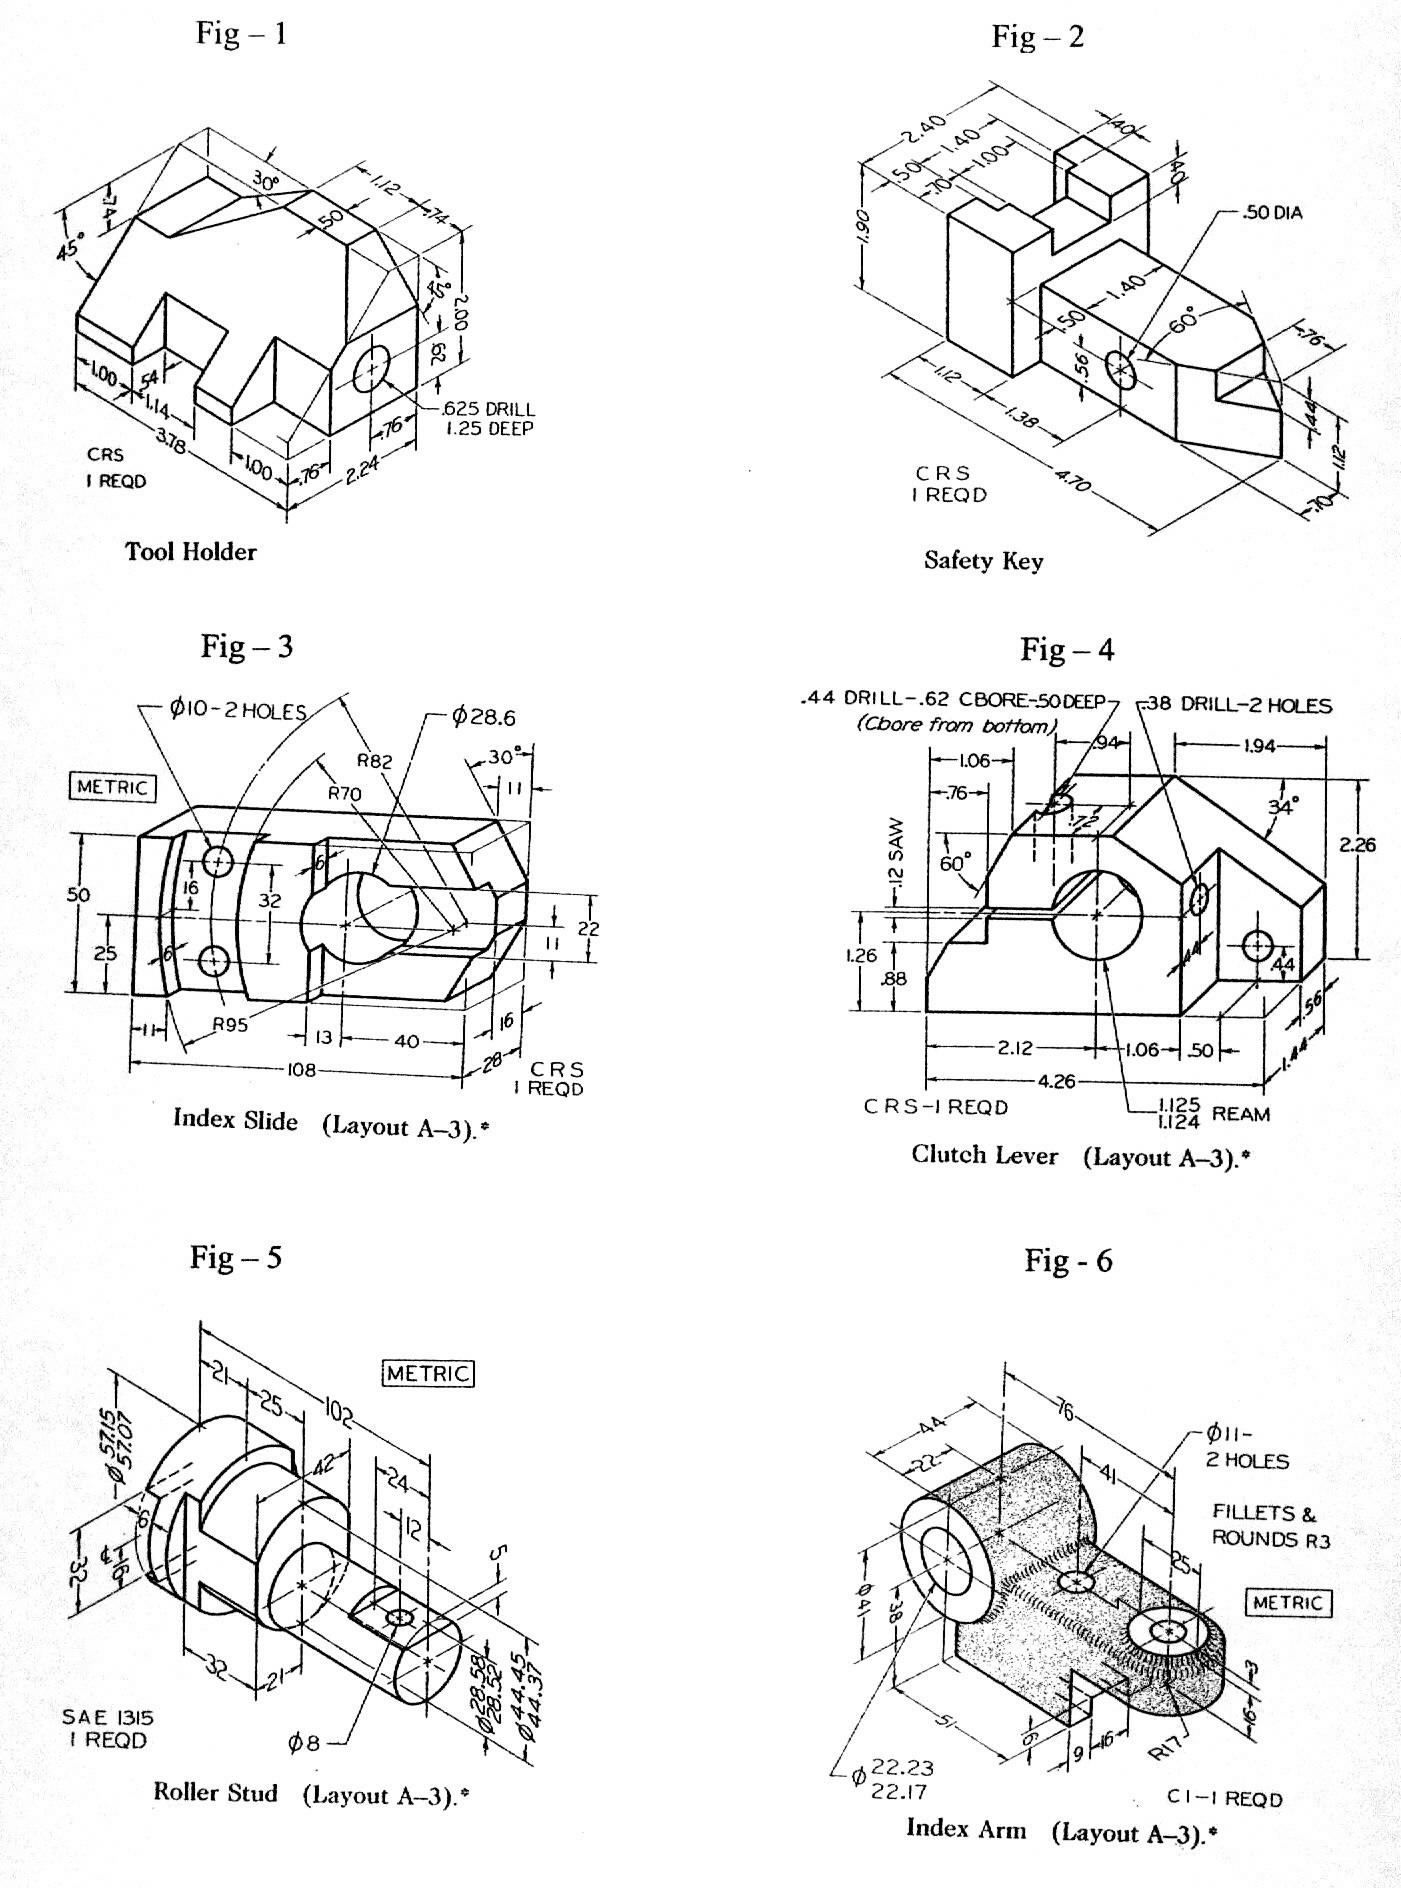 Autocad Mechanical Drawings Samples at PaintingValley.com